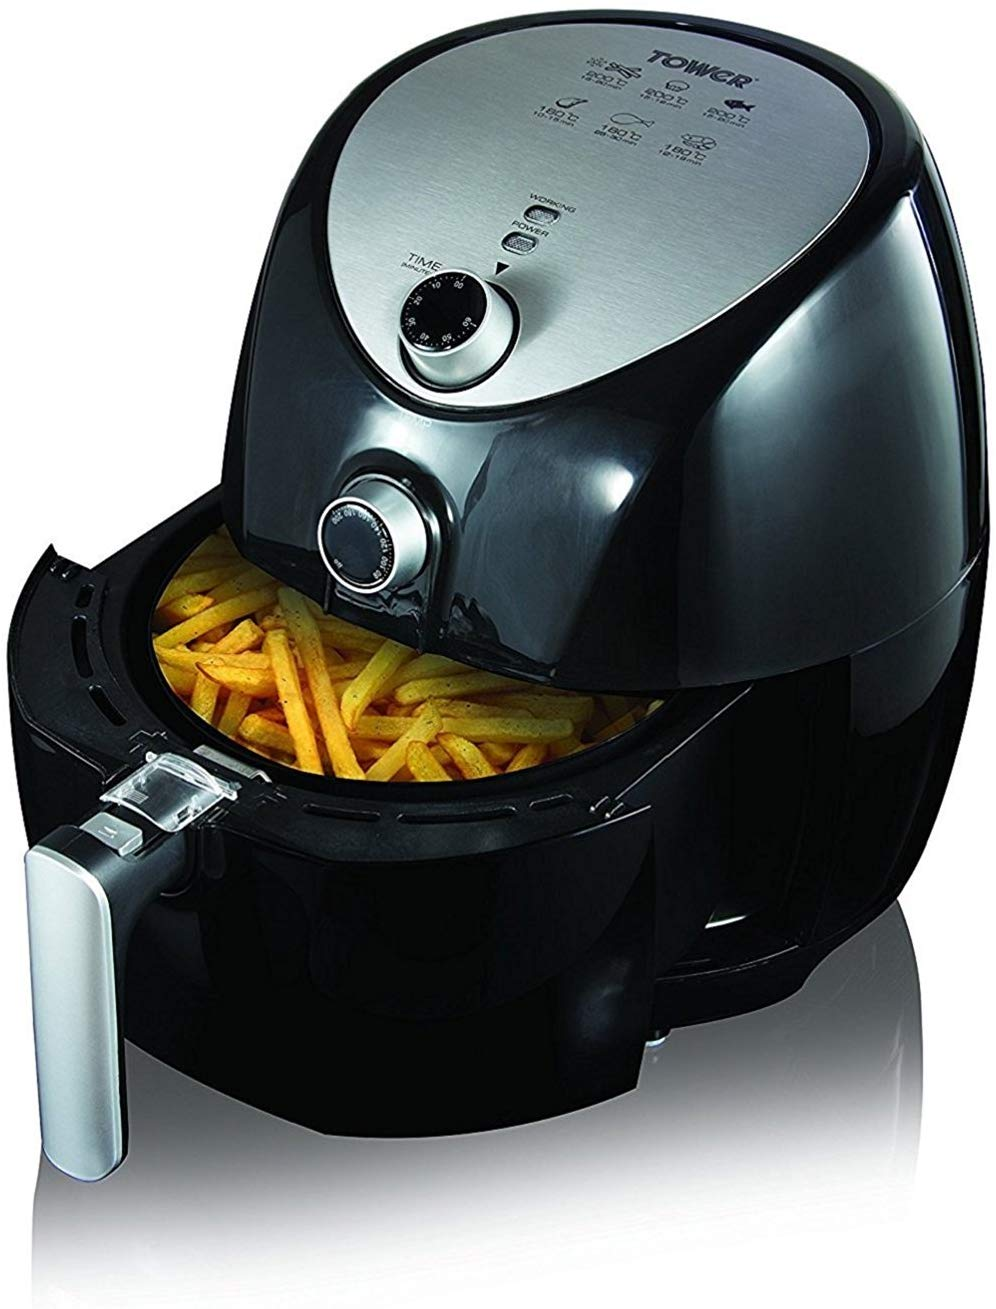 59% off Tower Air Fryer with Rapid Air Circulation System, 1500 W, 4.3 Litre, Black